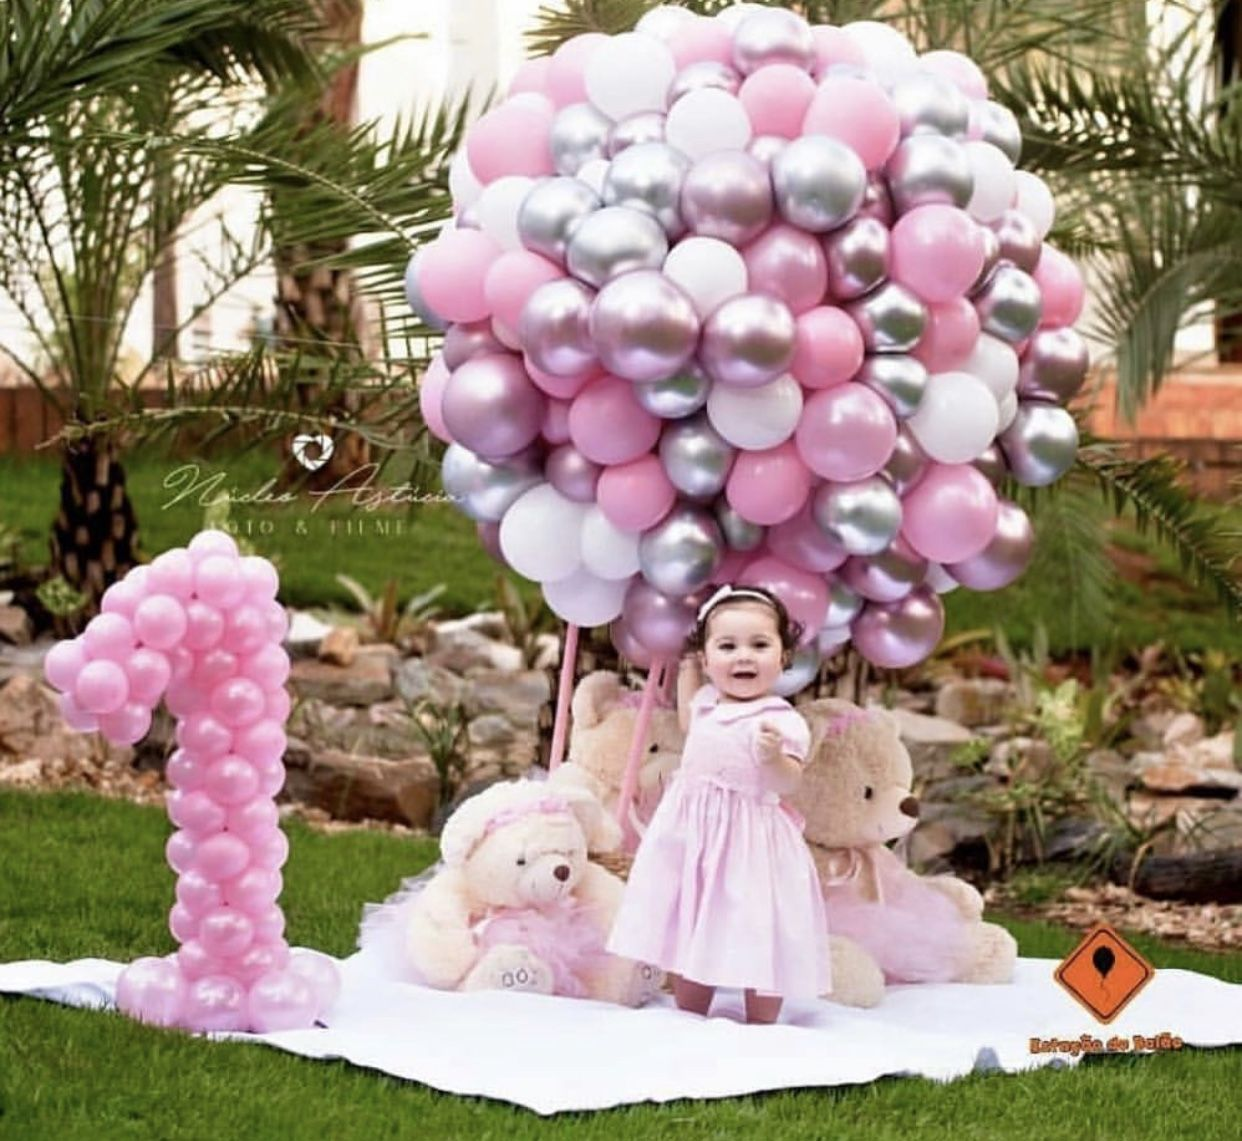 Pin By Angie Garcia On Baptism 1st Birthday Party For Girls